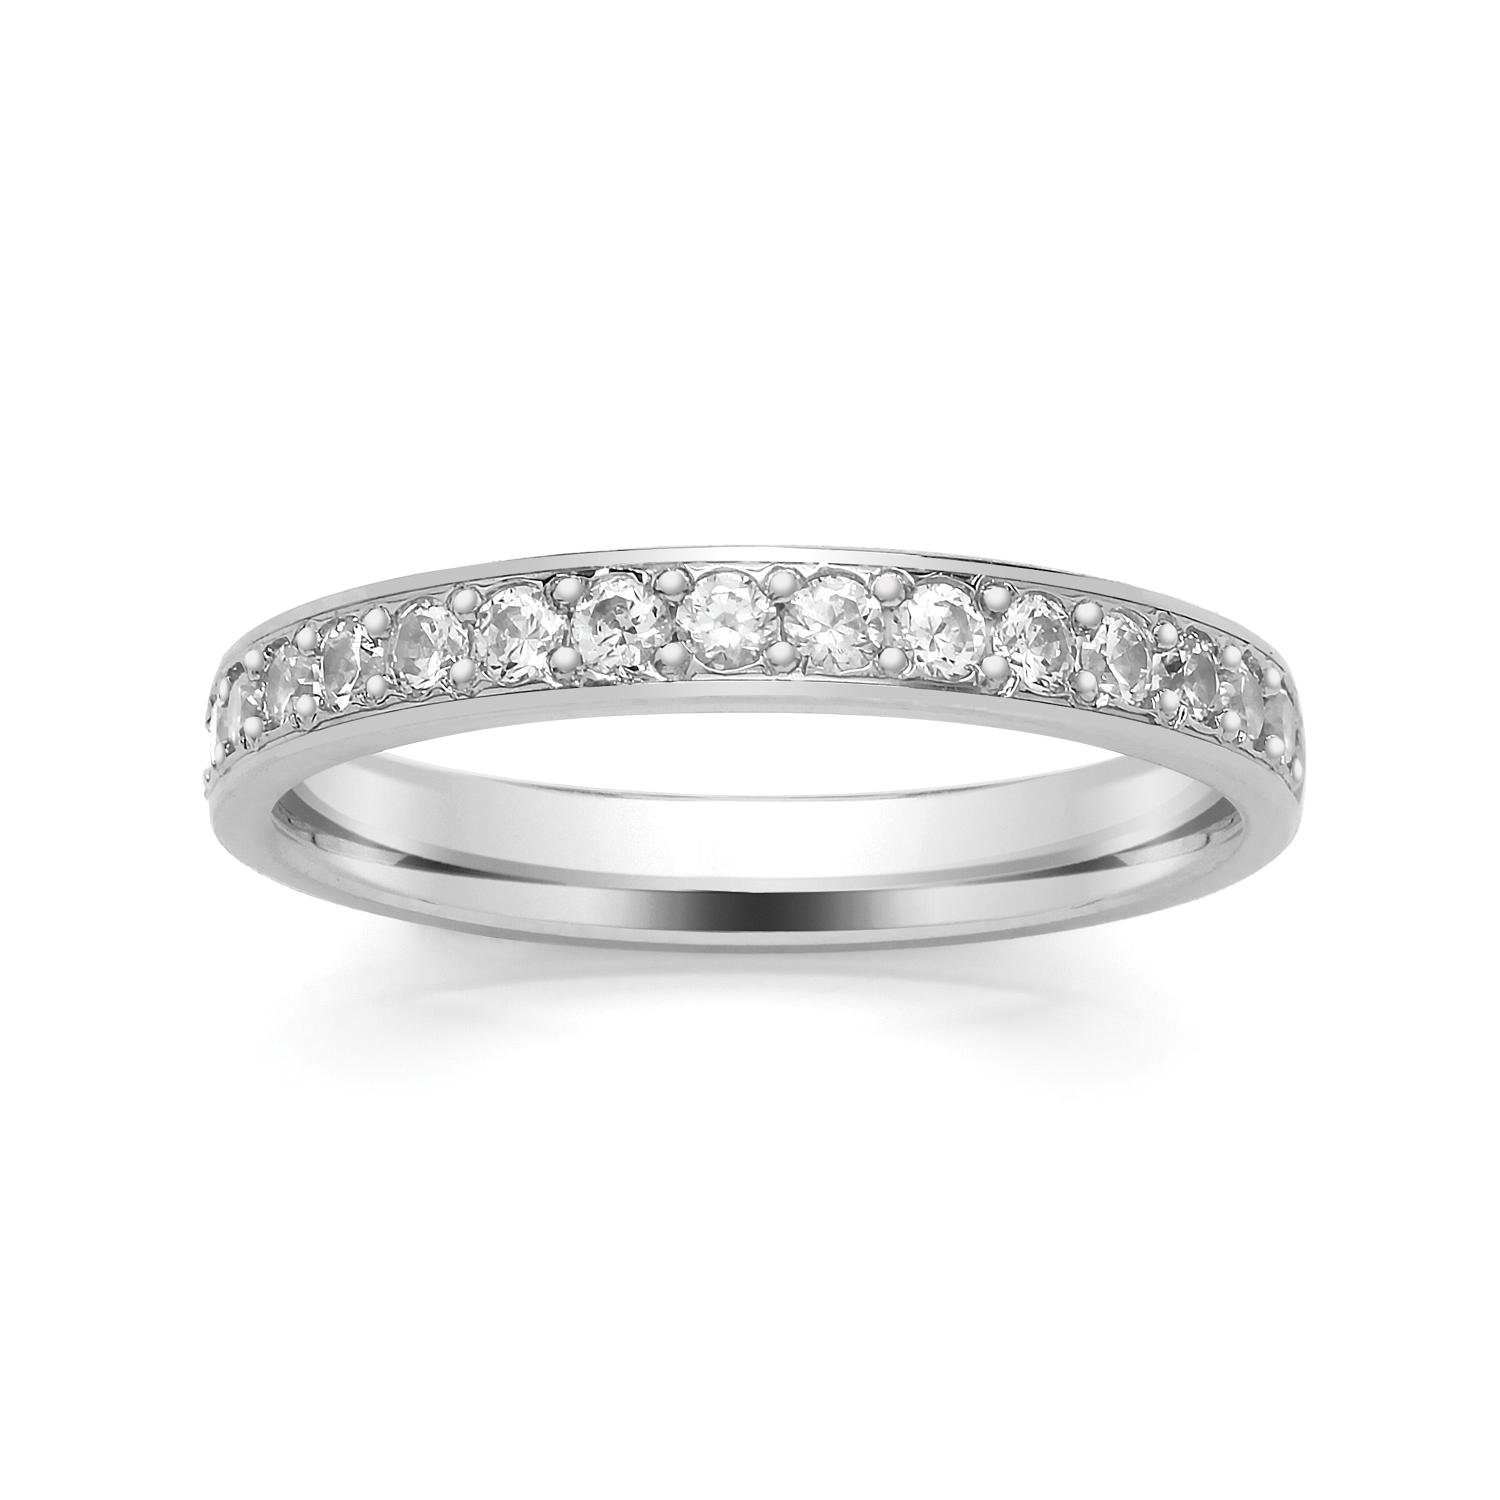 2.9mm Grain Set Diamond Ring